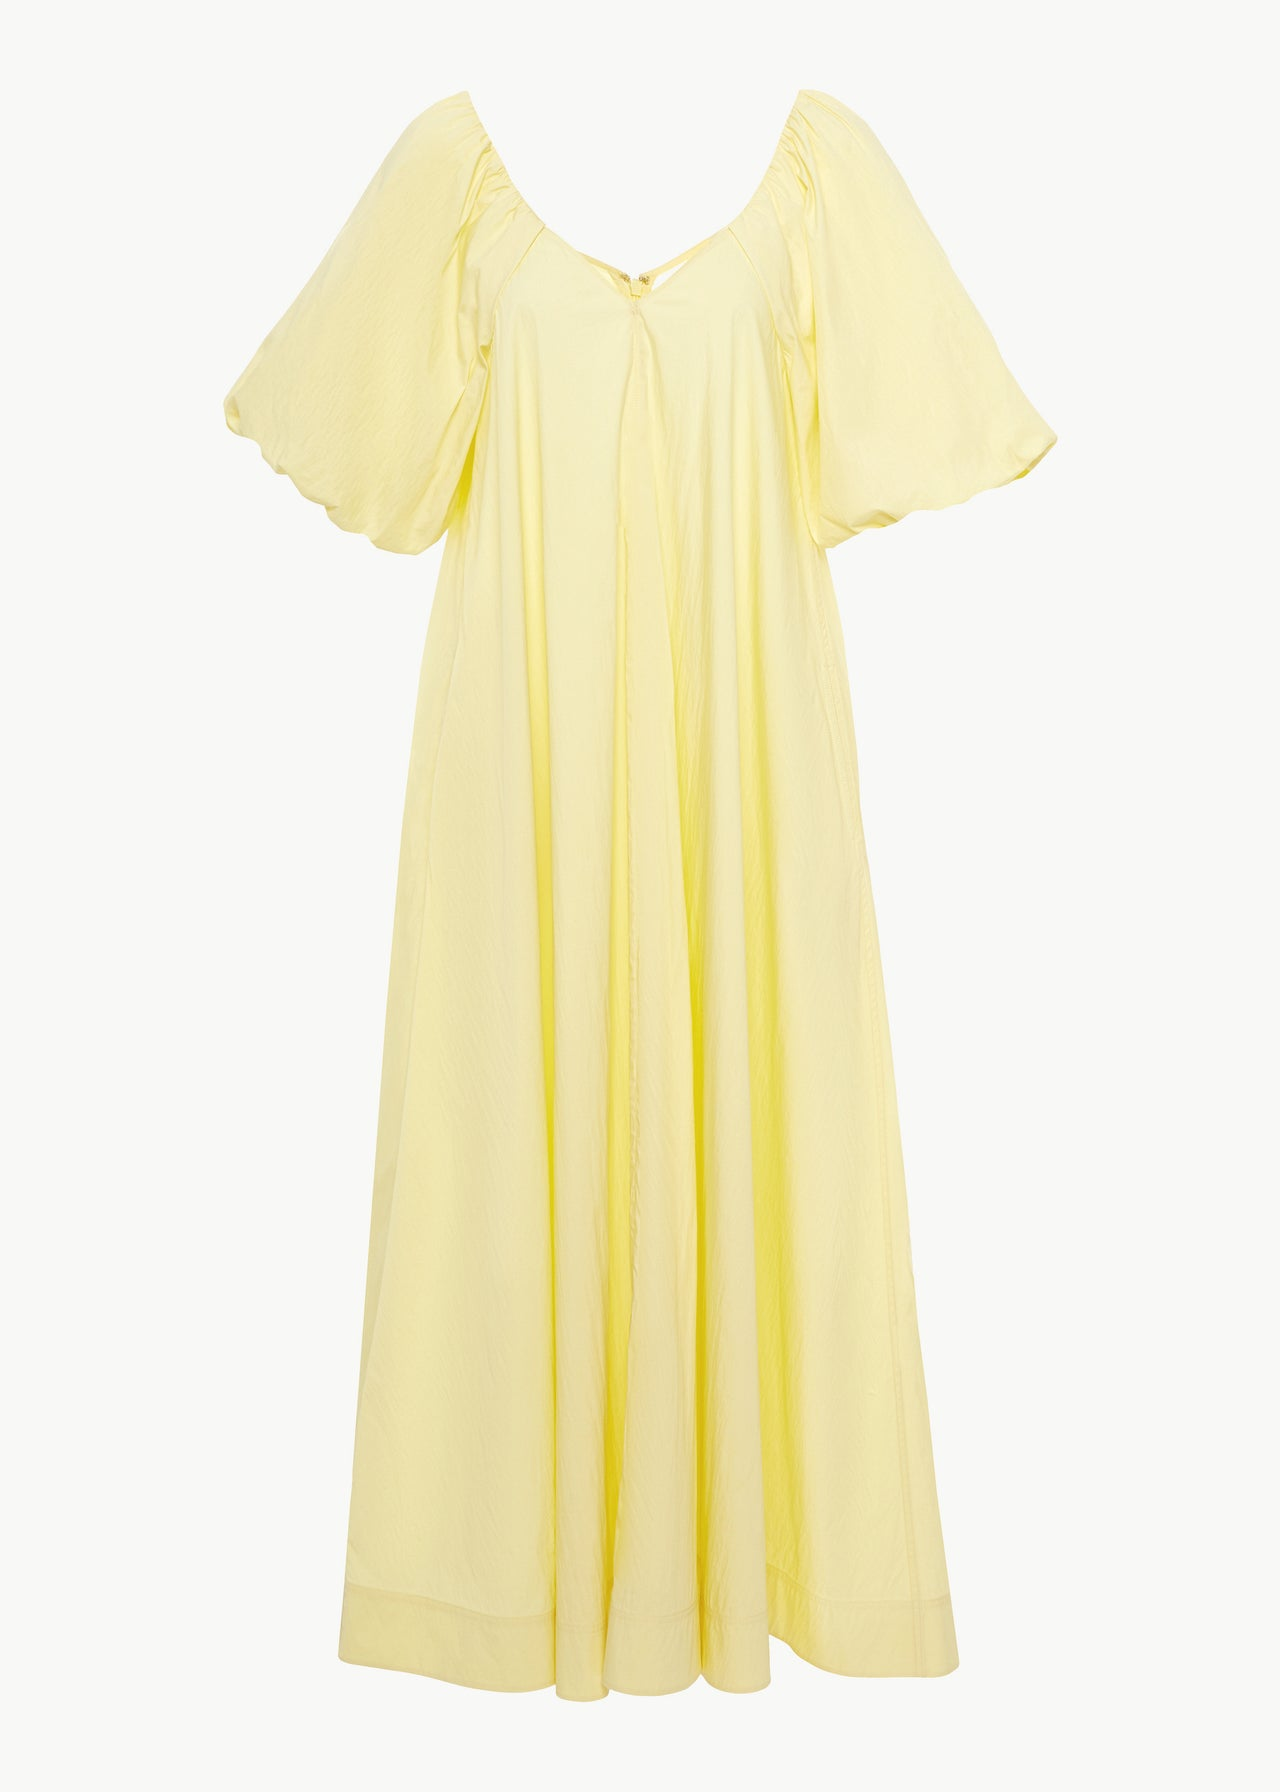 Bubble Sleeve Dress in Cotton Nylon - Yellow